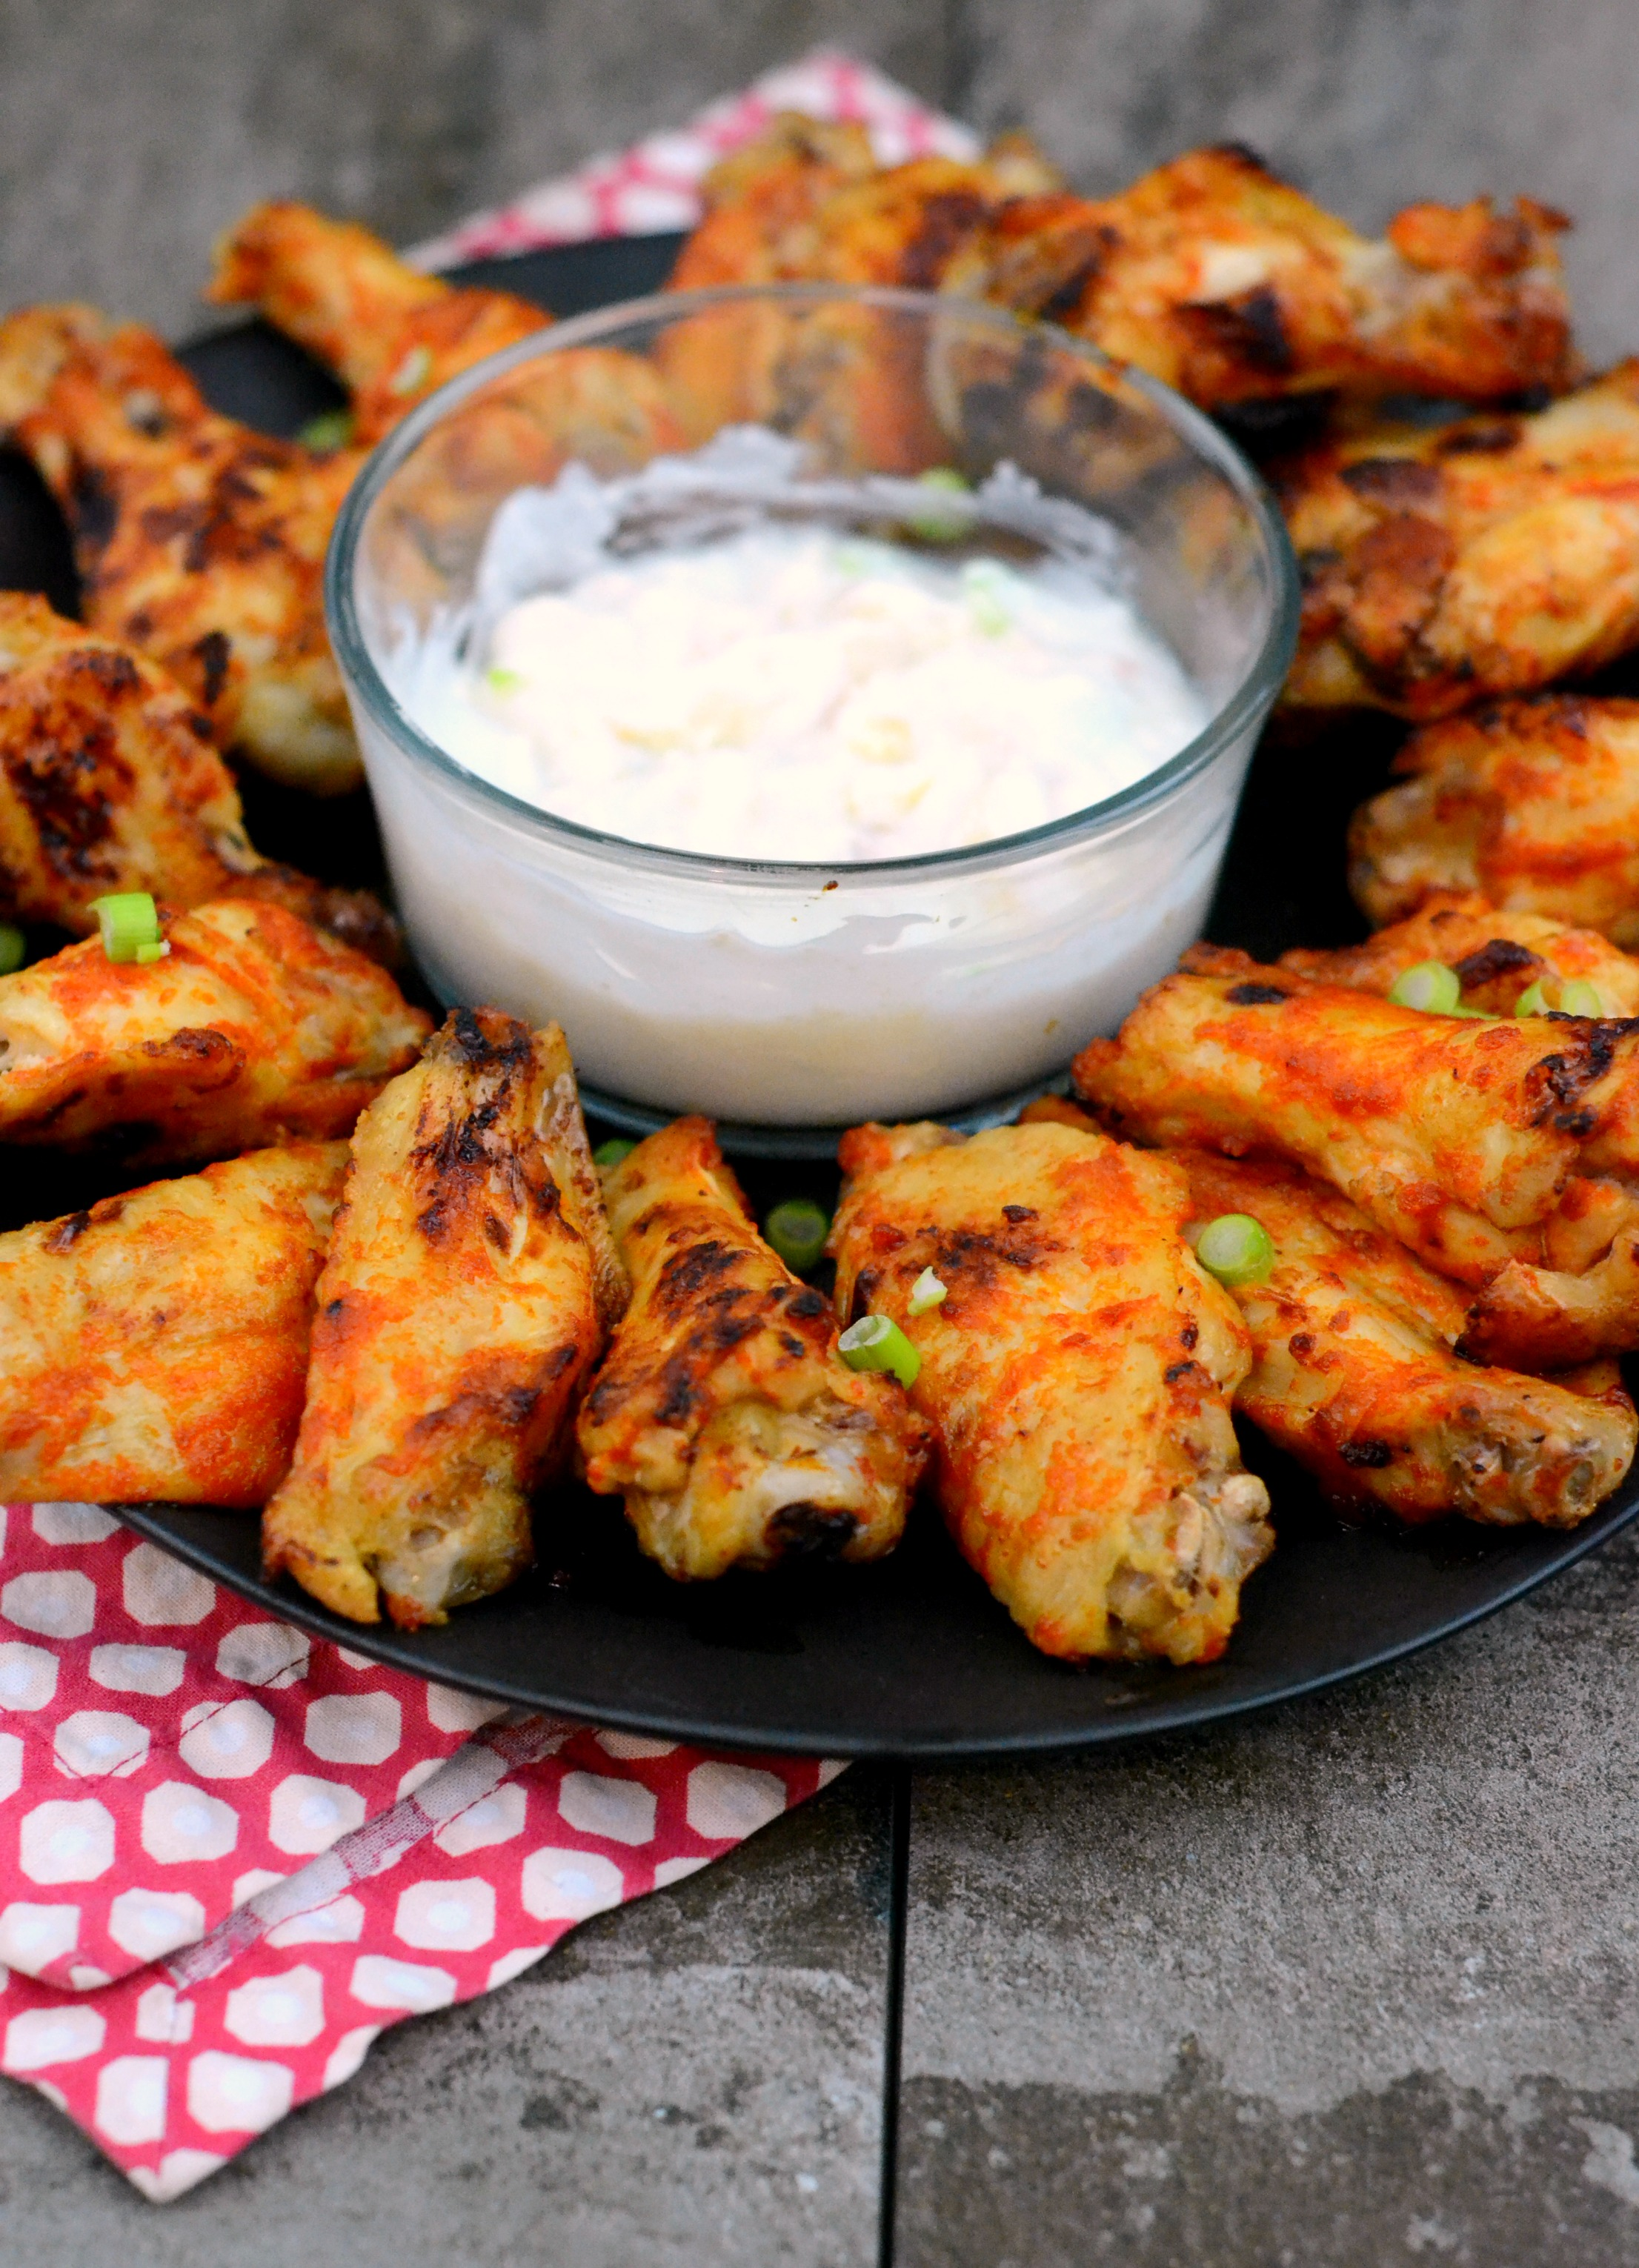 Spicy baked paleo wings arranged in a circle with a dipping sauce in the middle.